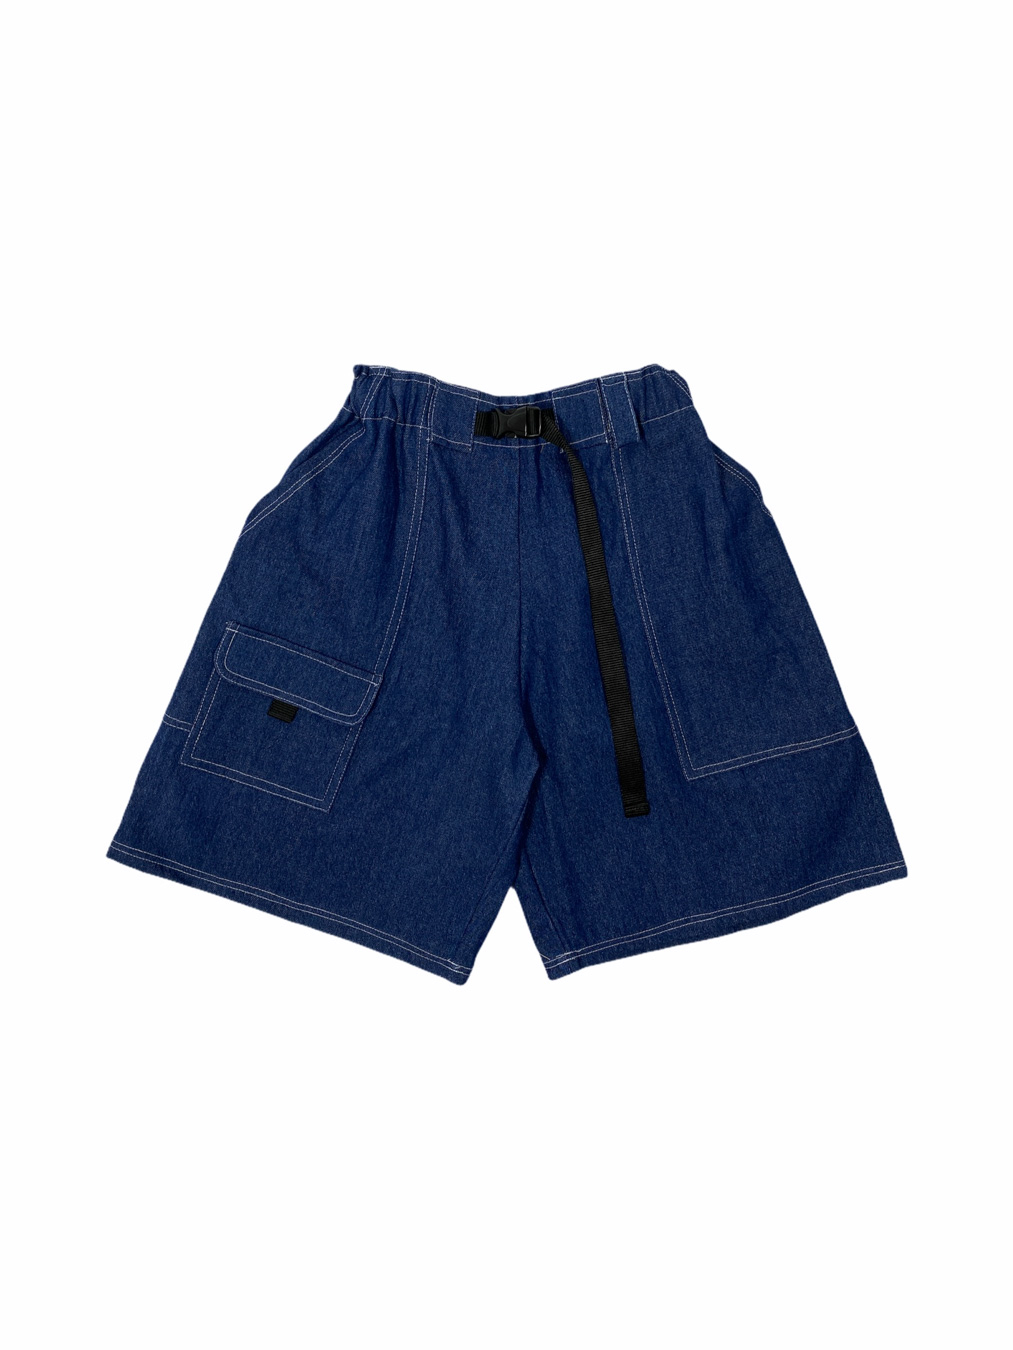 Baggy Jeans Shorts